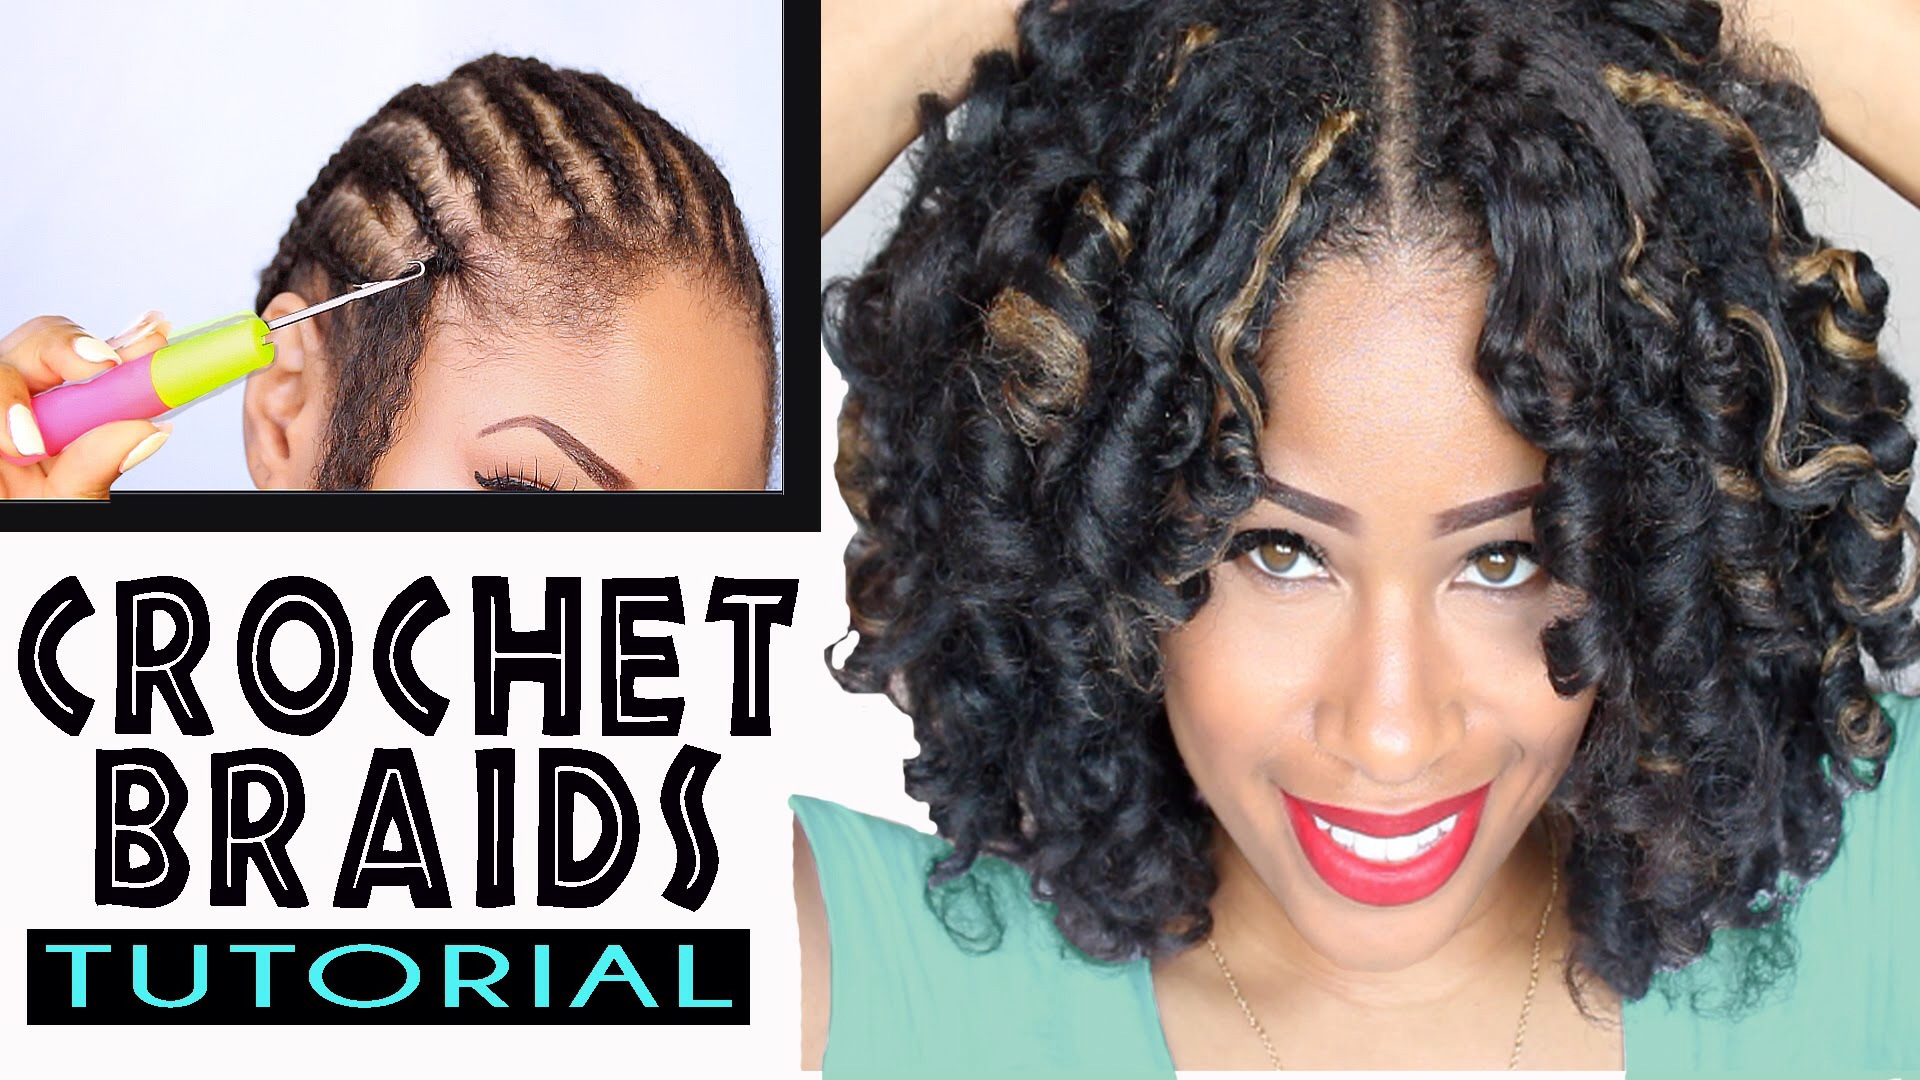 Crochet Hair Styles In Nigeria : Below, you?ll find one of the best crochet braiding tutorials on ...